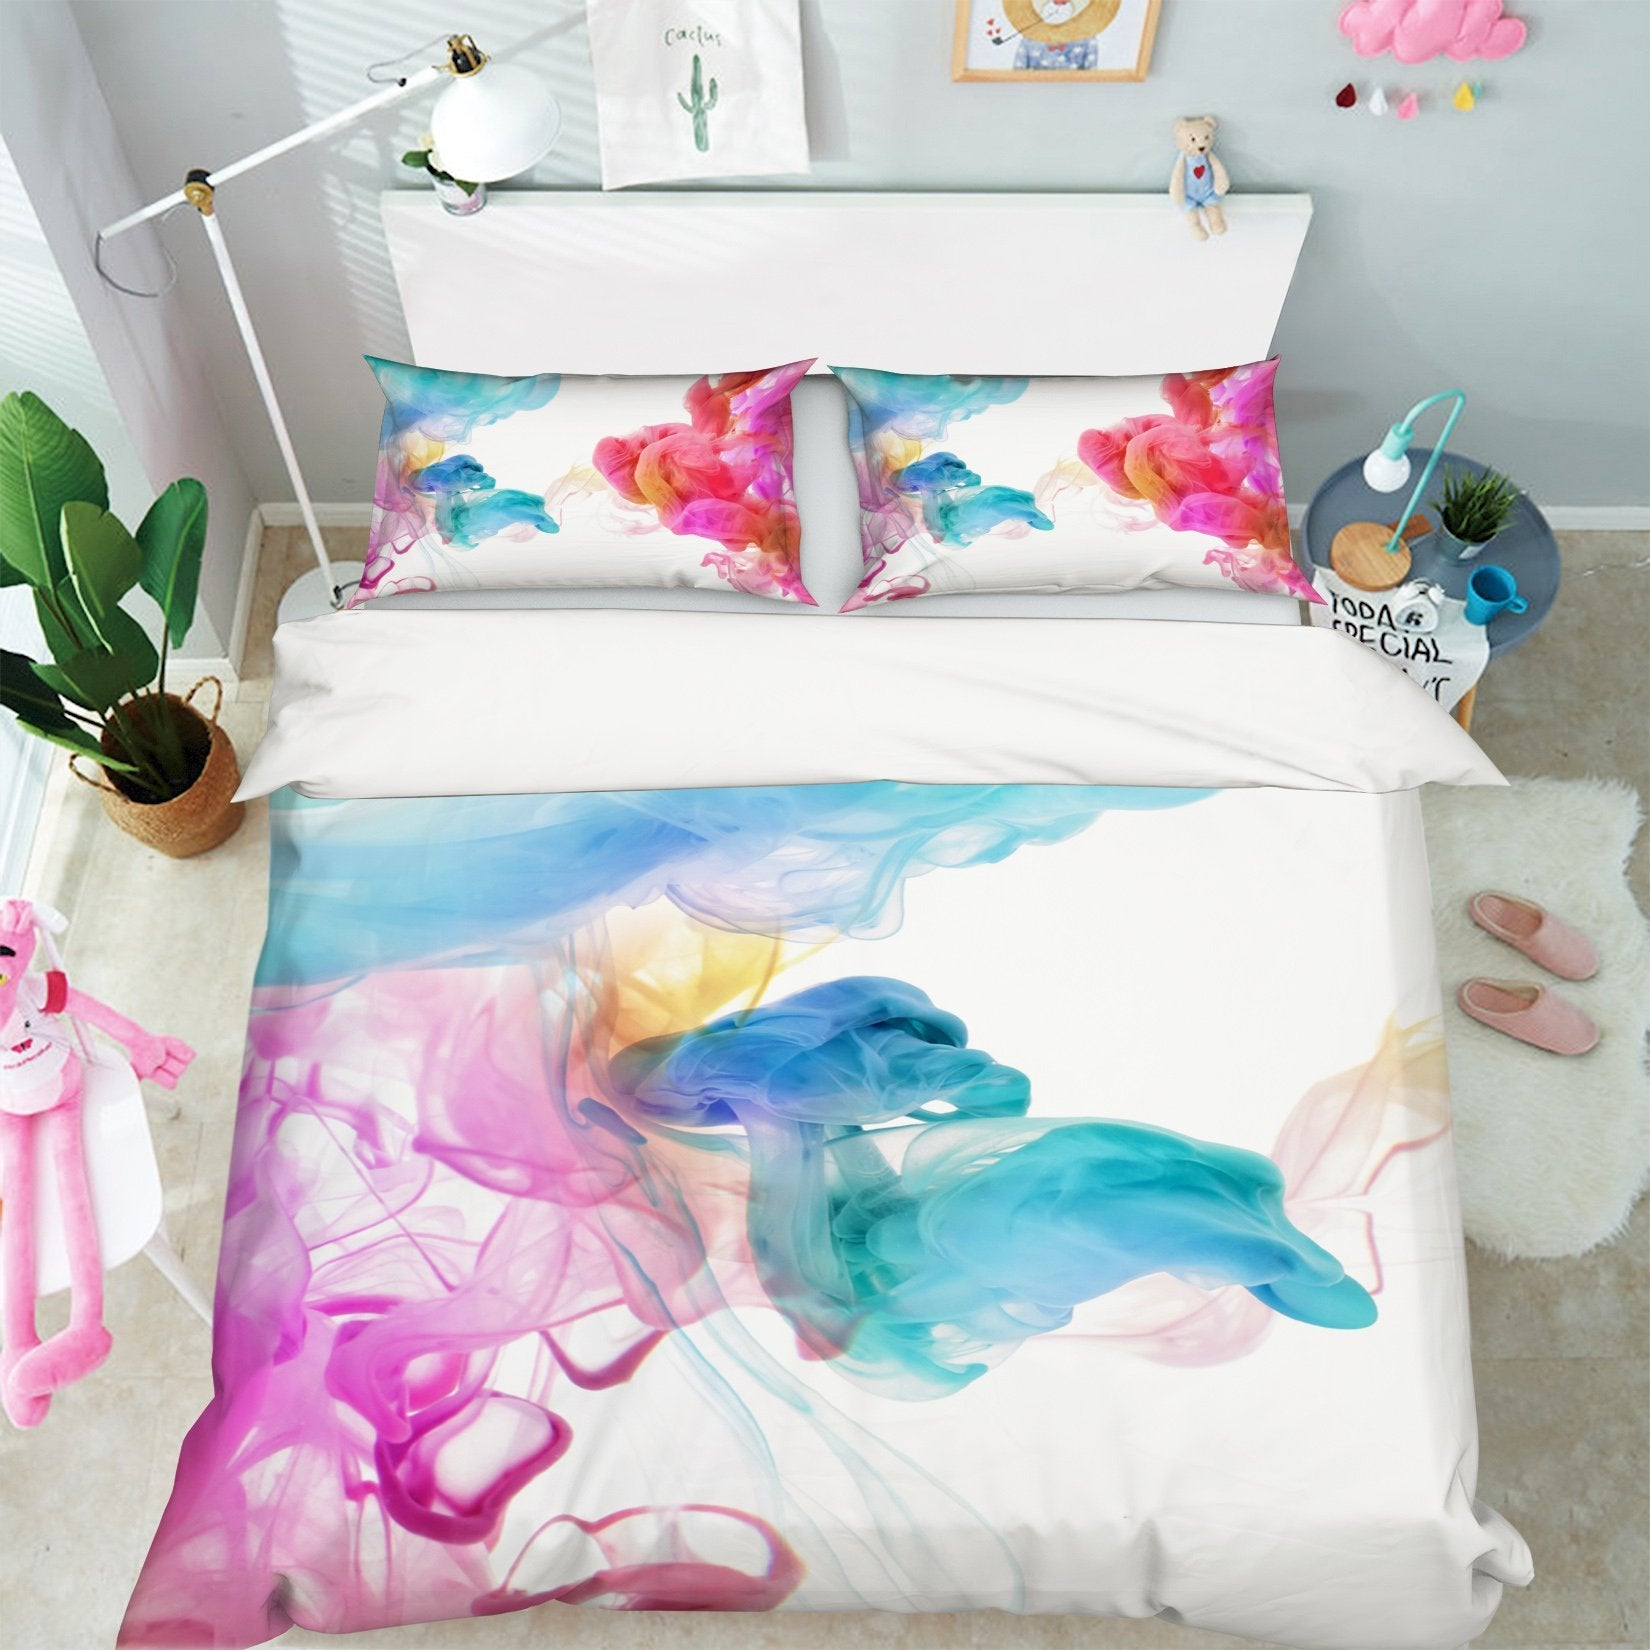 3D Gouache Gradient 004 Bed Pillowcases Quilt Wallpaper AJ Wallpaper